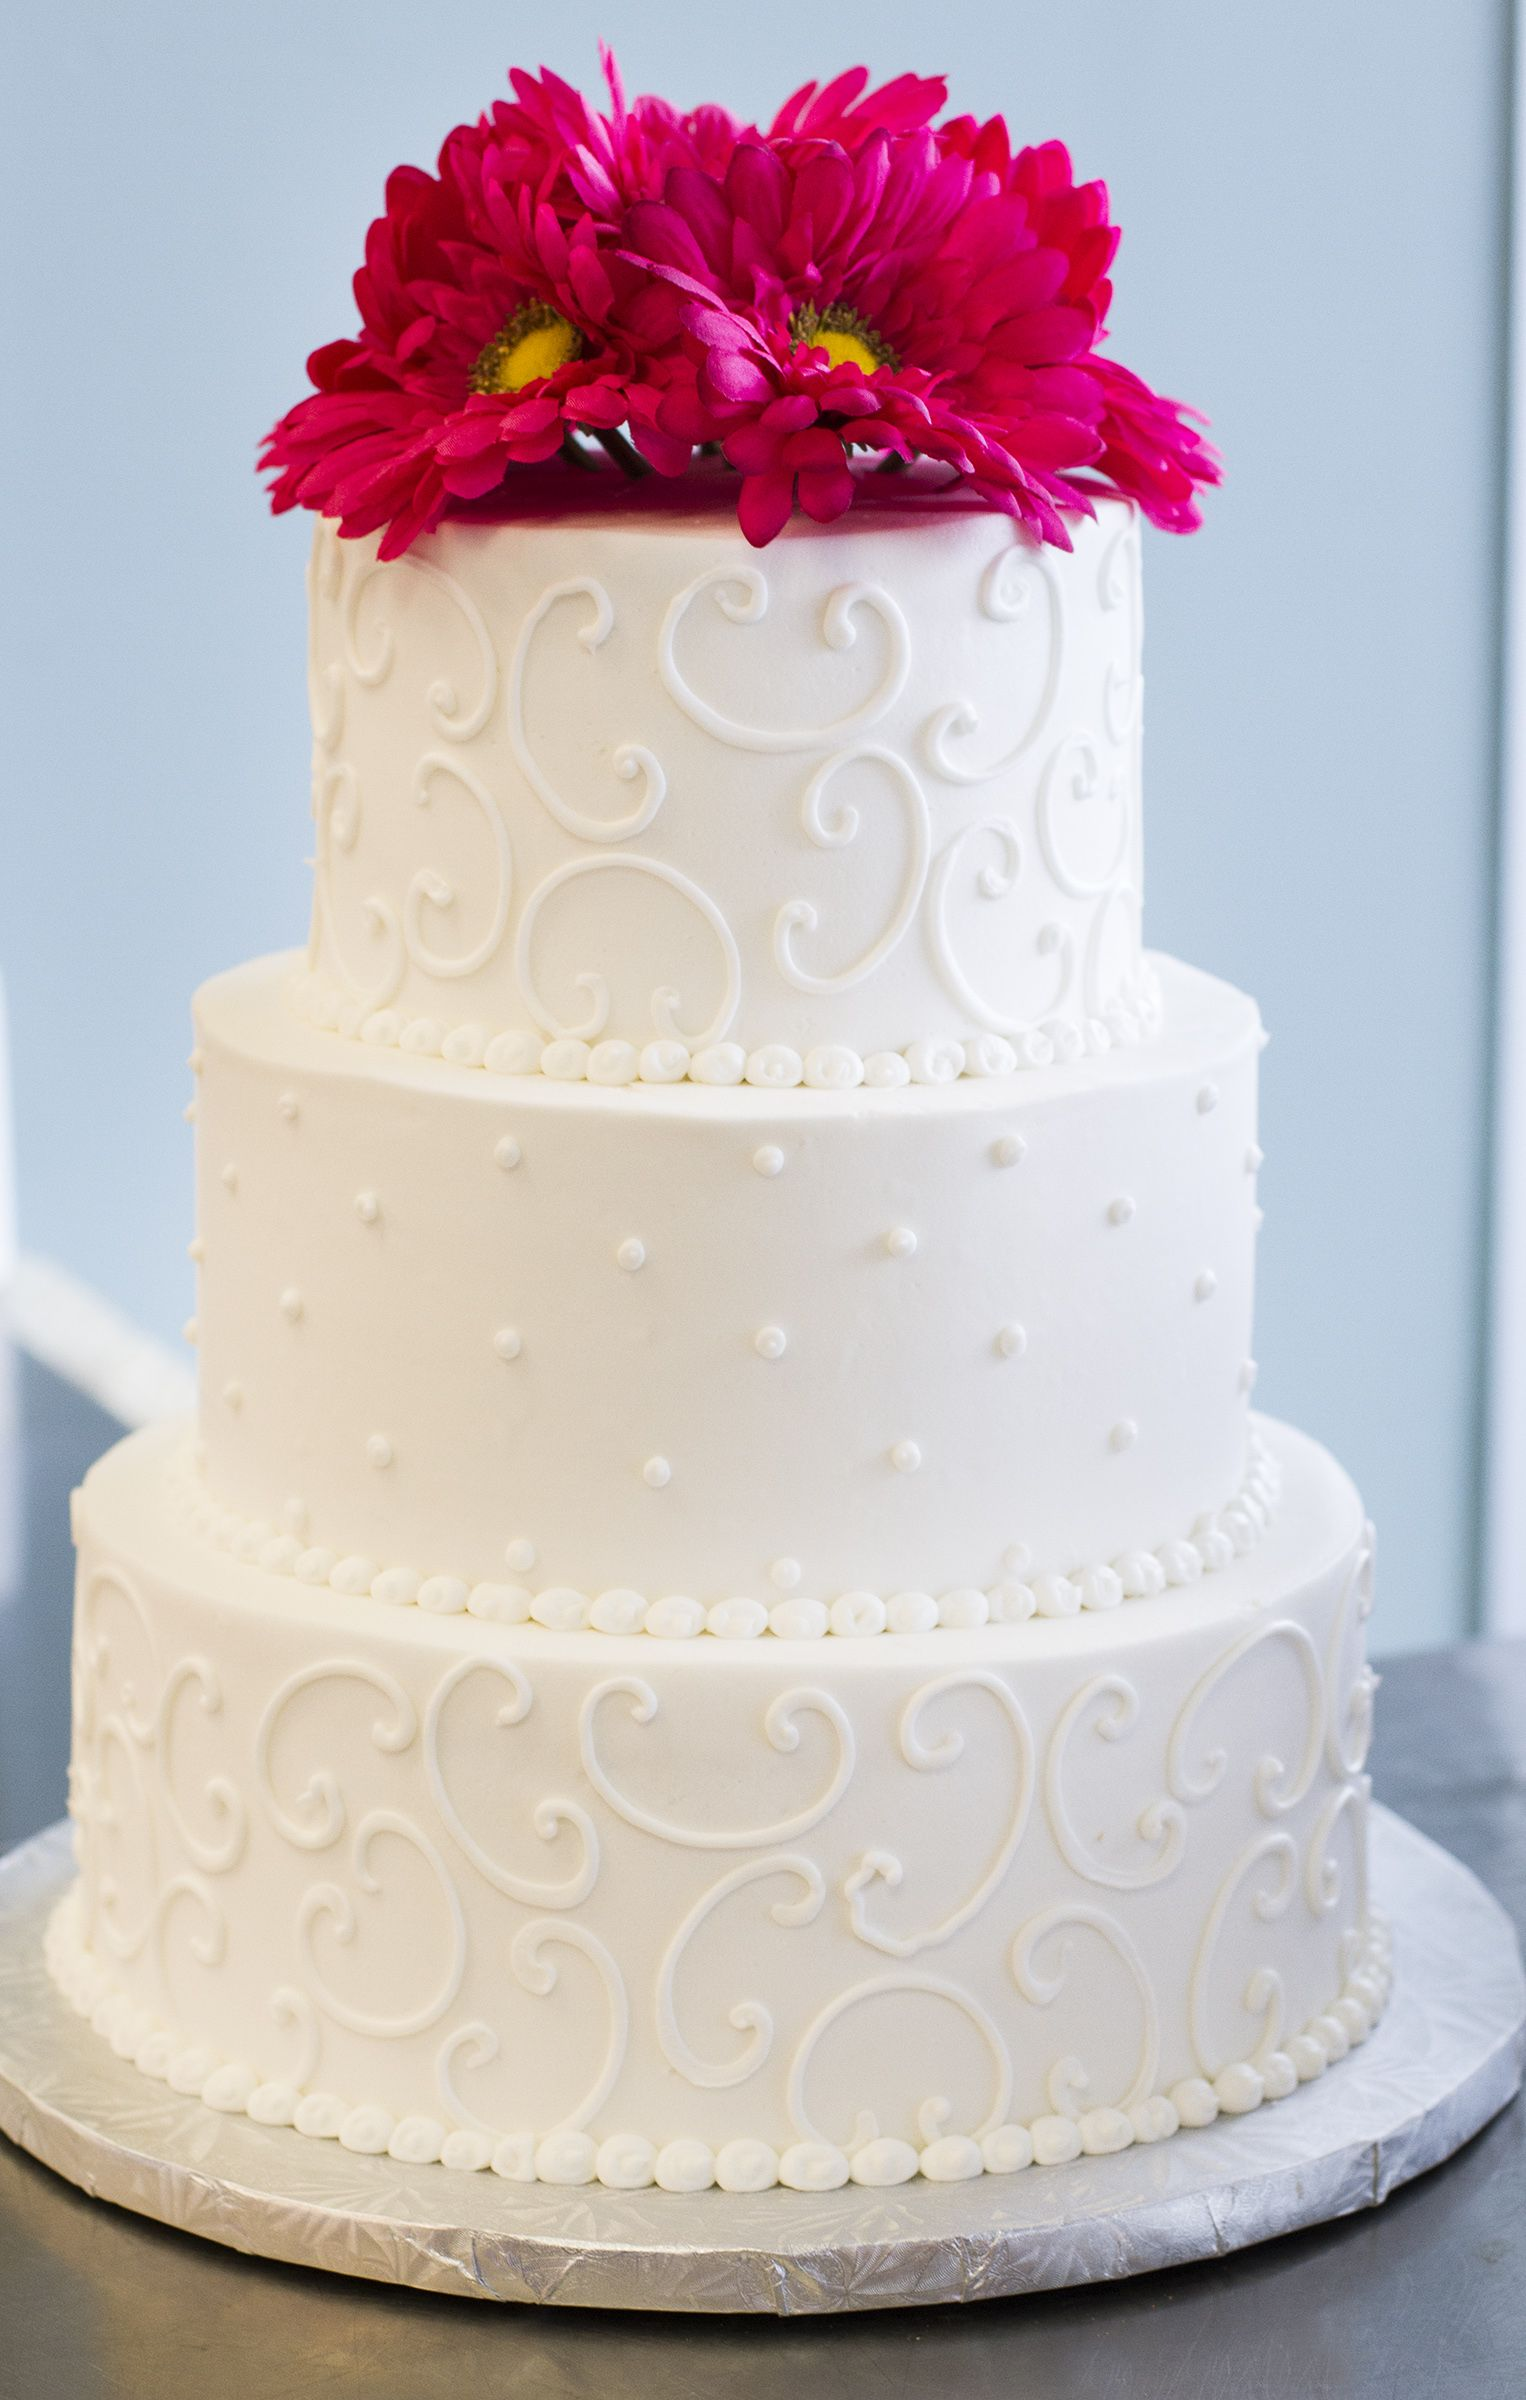 A simple, beautiful white wedding cake with pink flowers. Cake # 028 ...